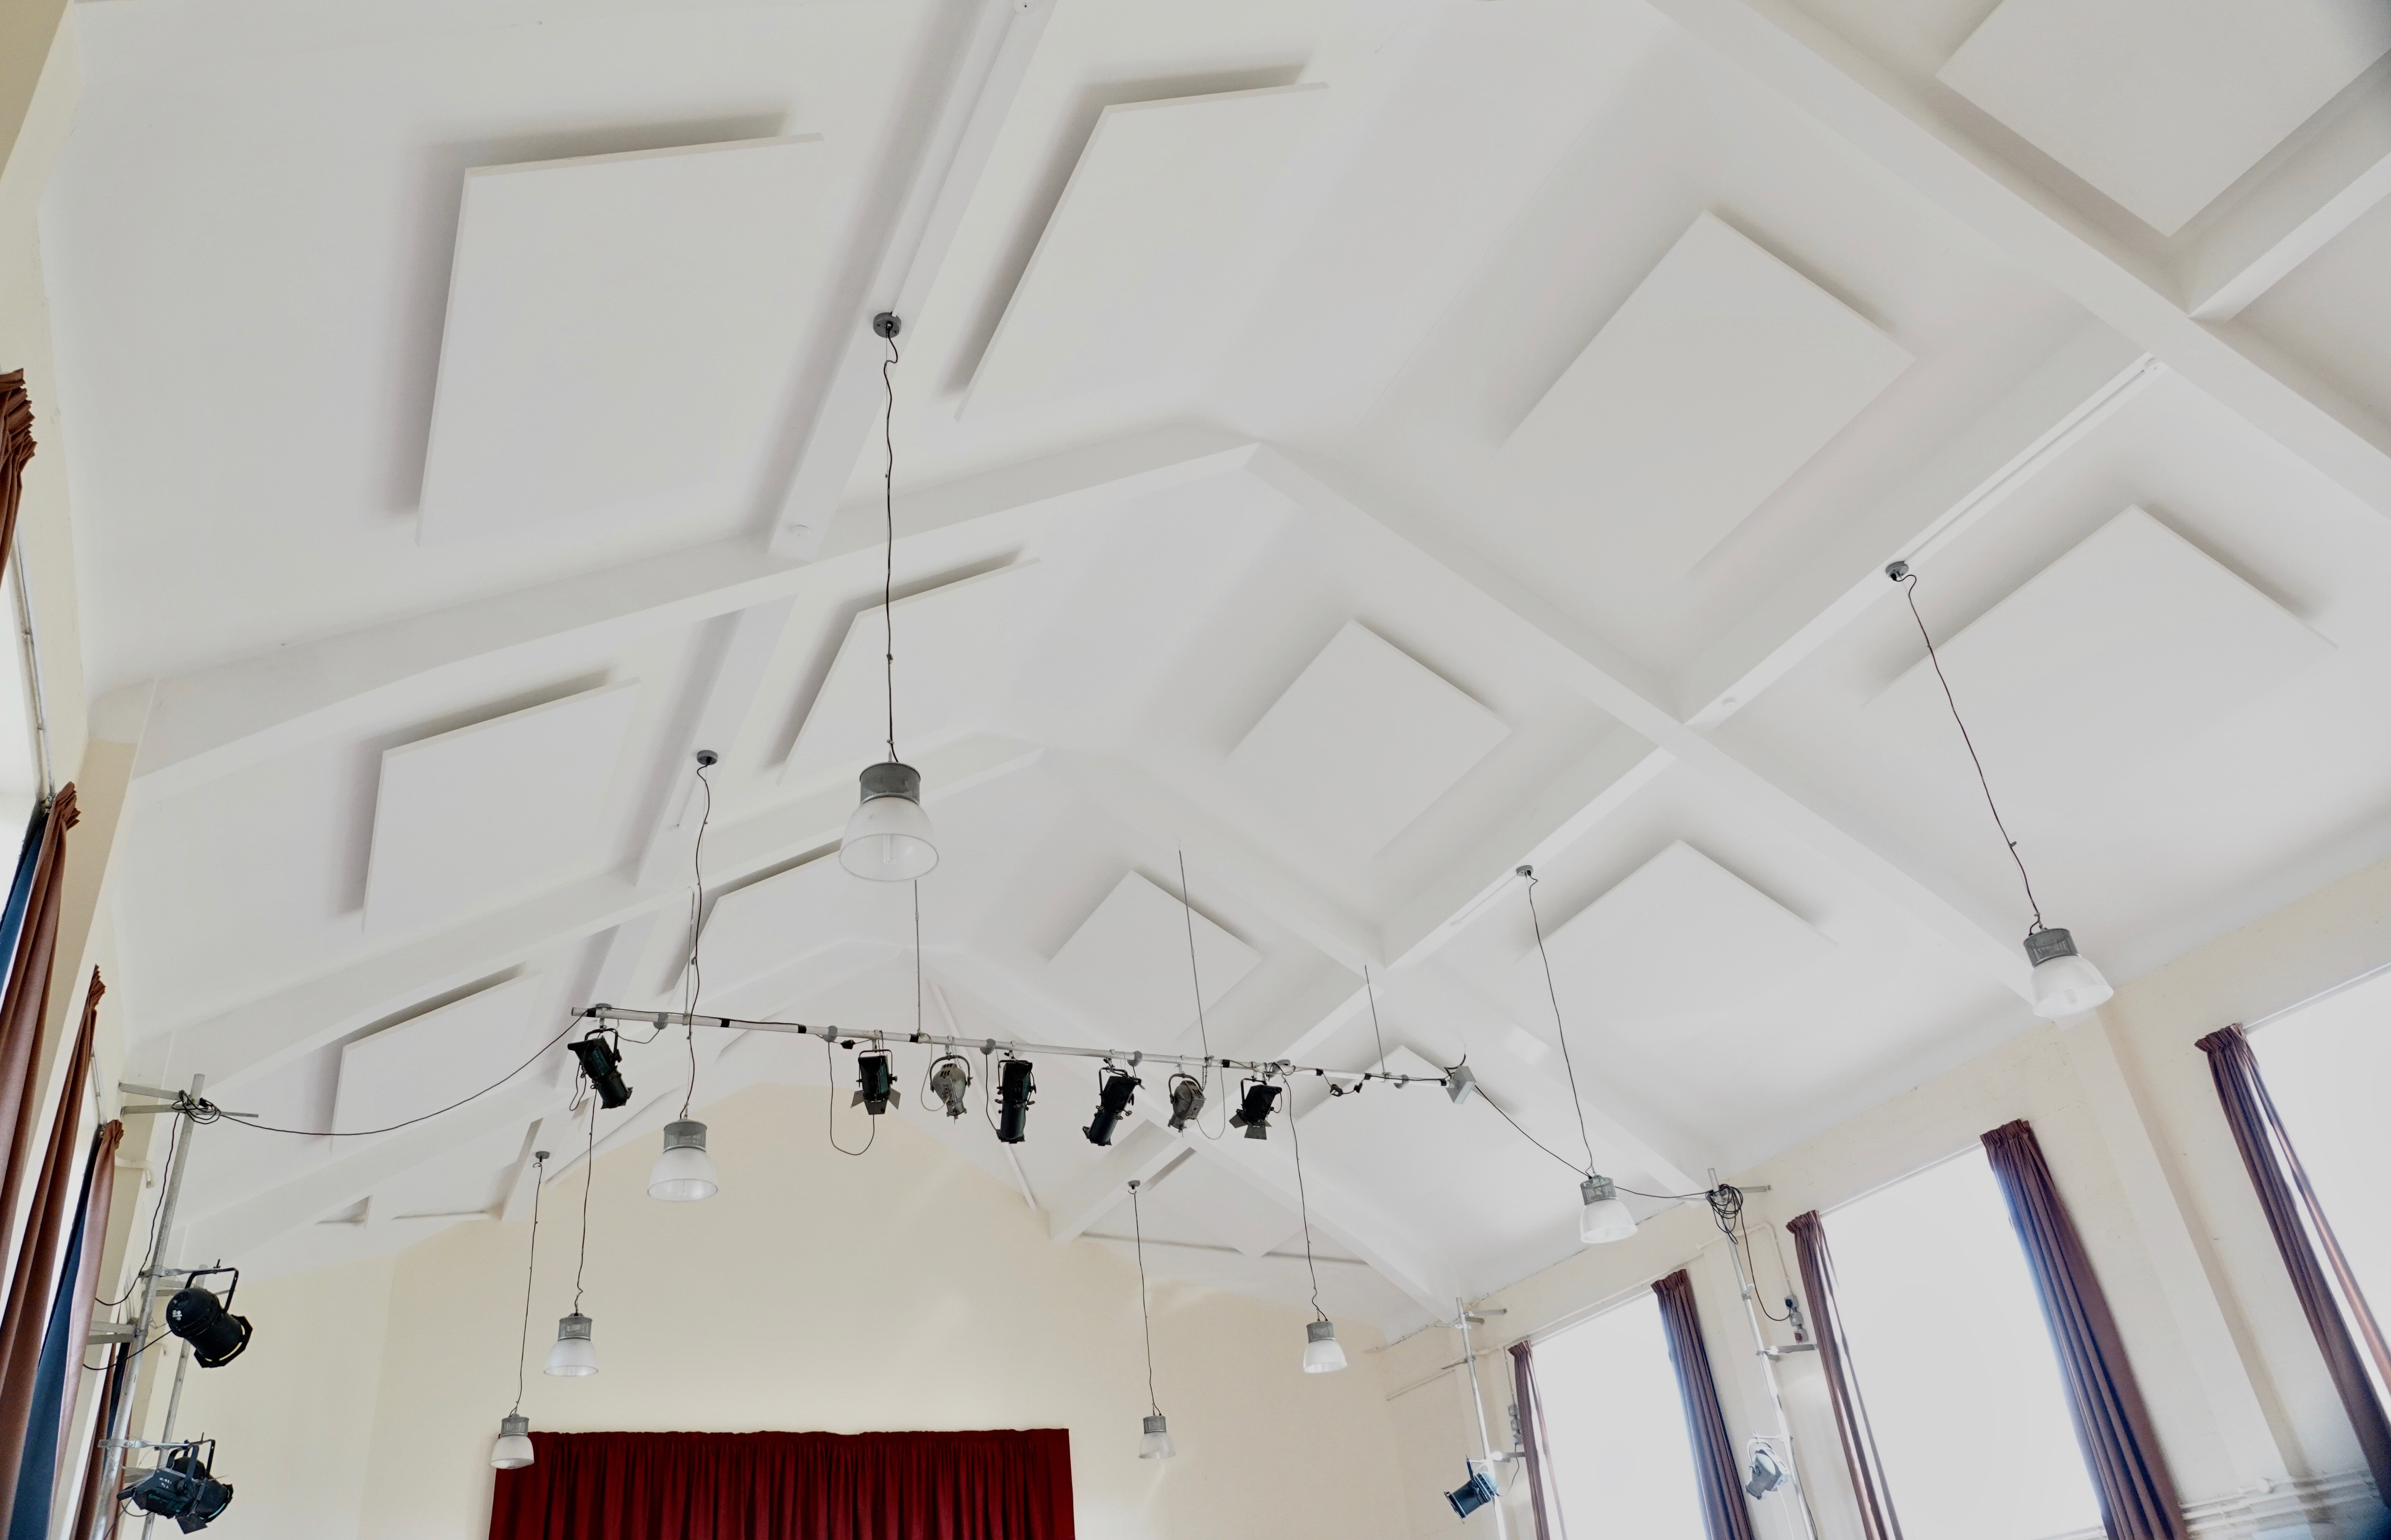 Acoustic panels and stage lighting